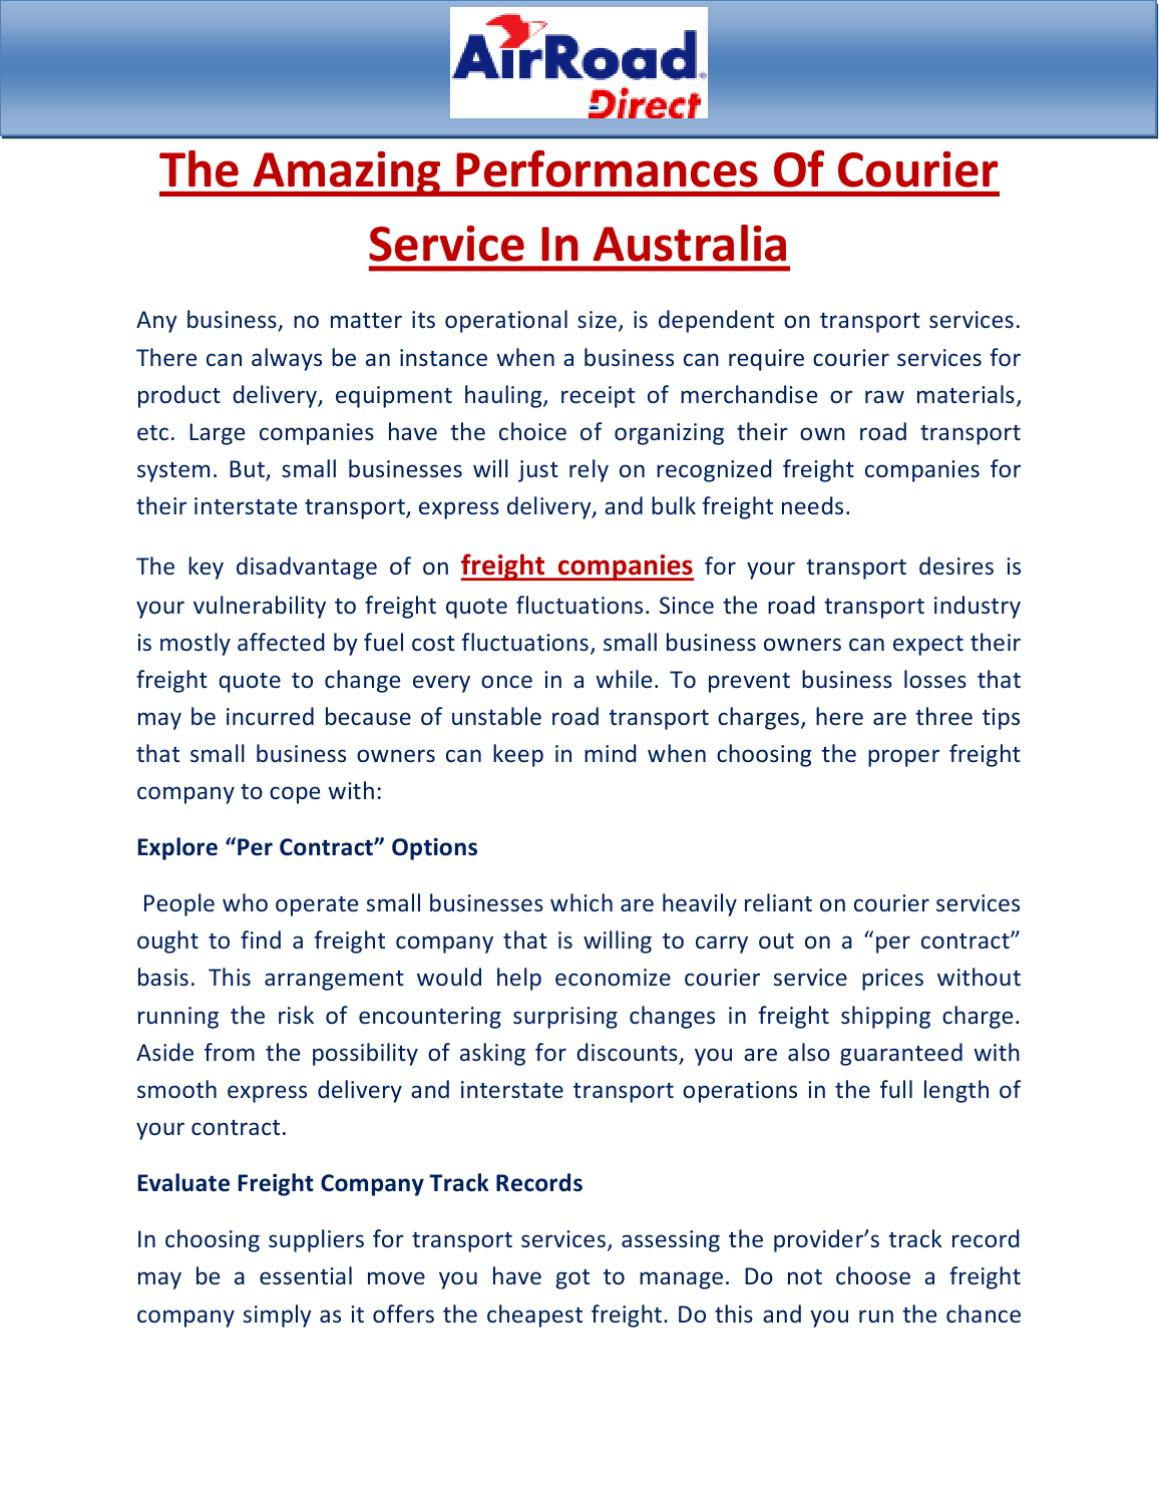 The Amazing Performances Of Courier Service In Australia by John